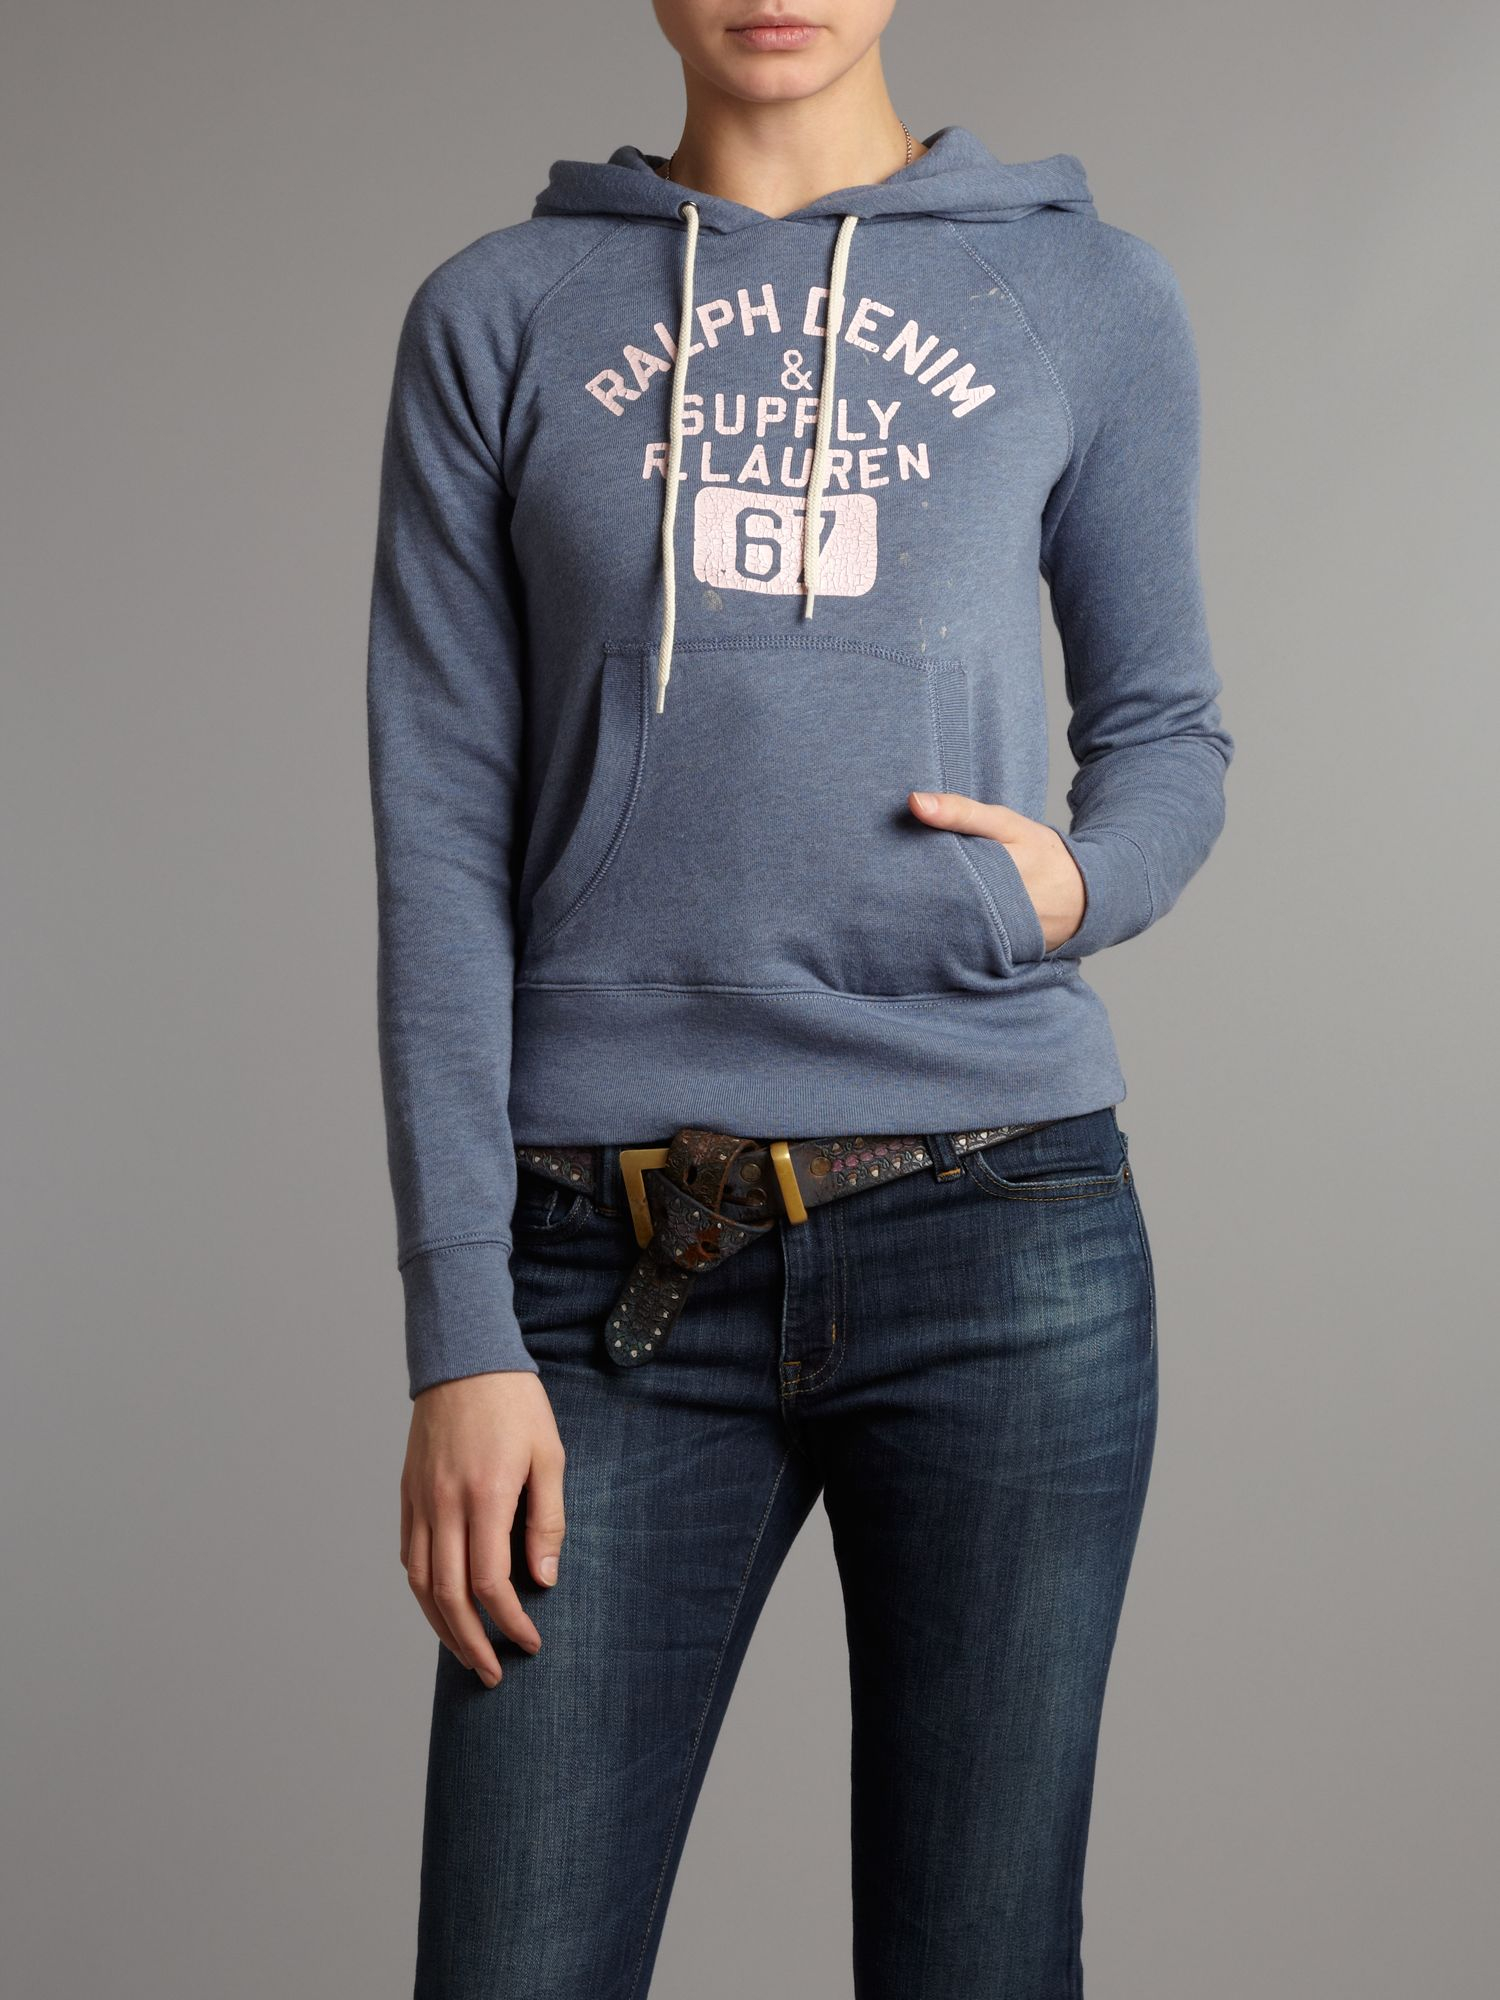 lyst denim supply ralph lauren pull on hoodie in gray. Black Bedroom Furniture Sets. Home Design Ideas